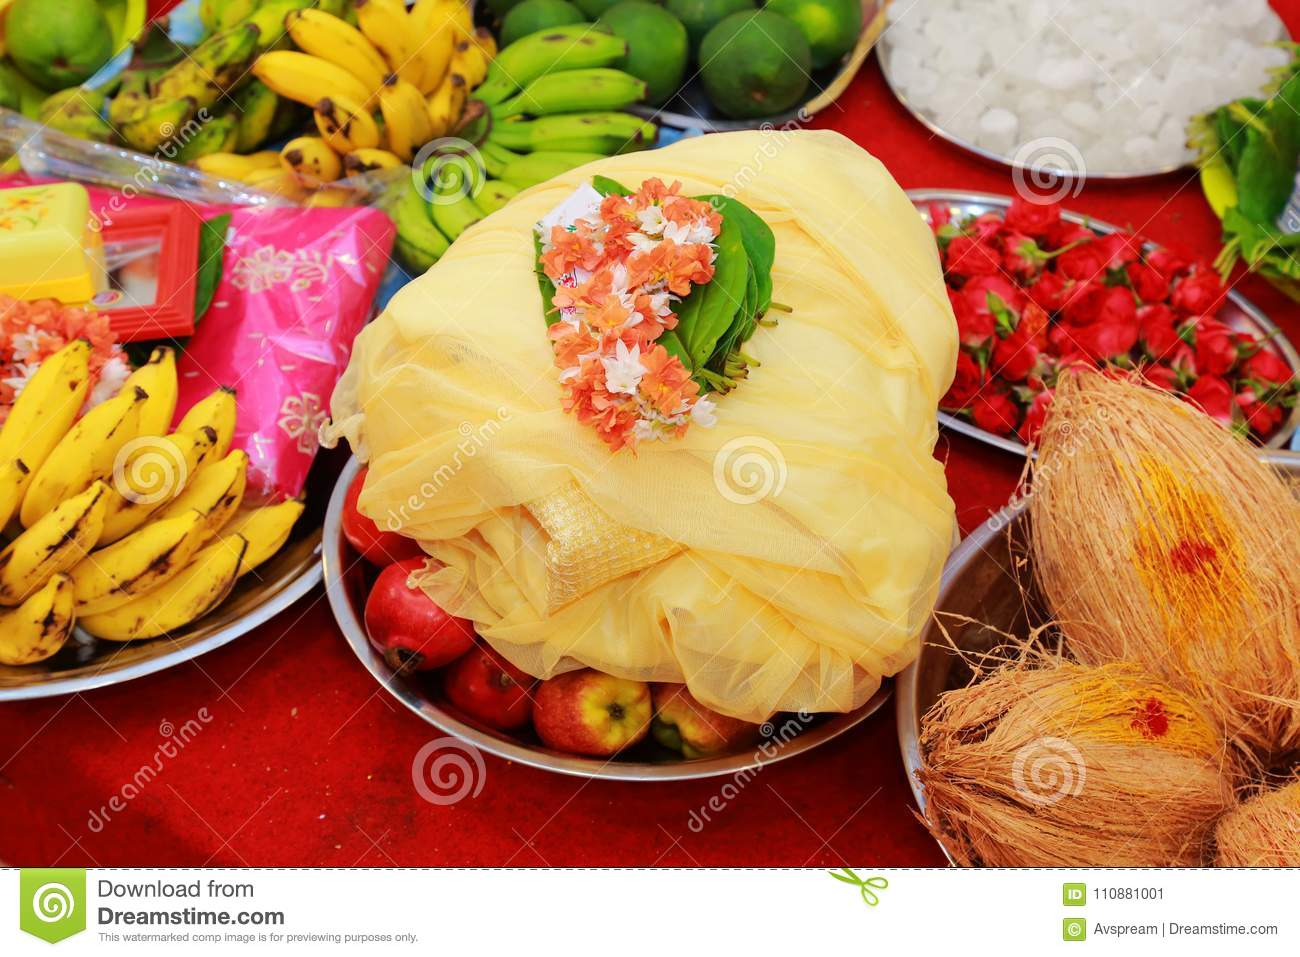 South Indian Wedding Ceremony Flowers With Fruits In Silver Plate Stock Image Image Of 2025 Beginnings 110881001